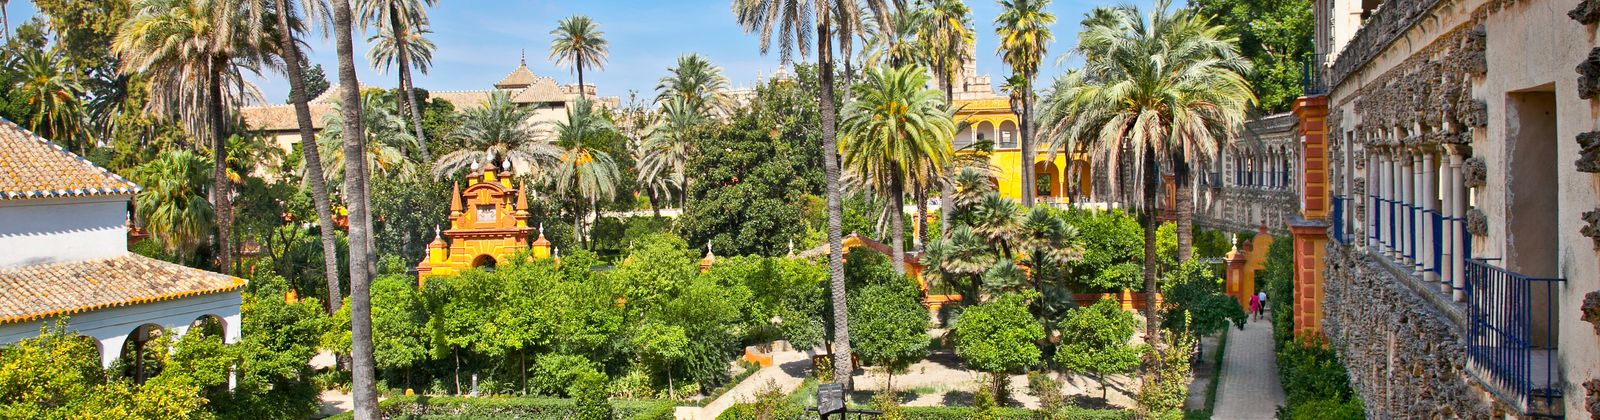 Top 15 attractions and things to do in Seville